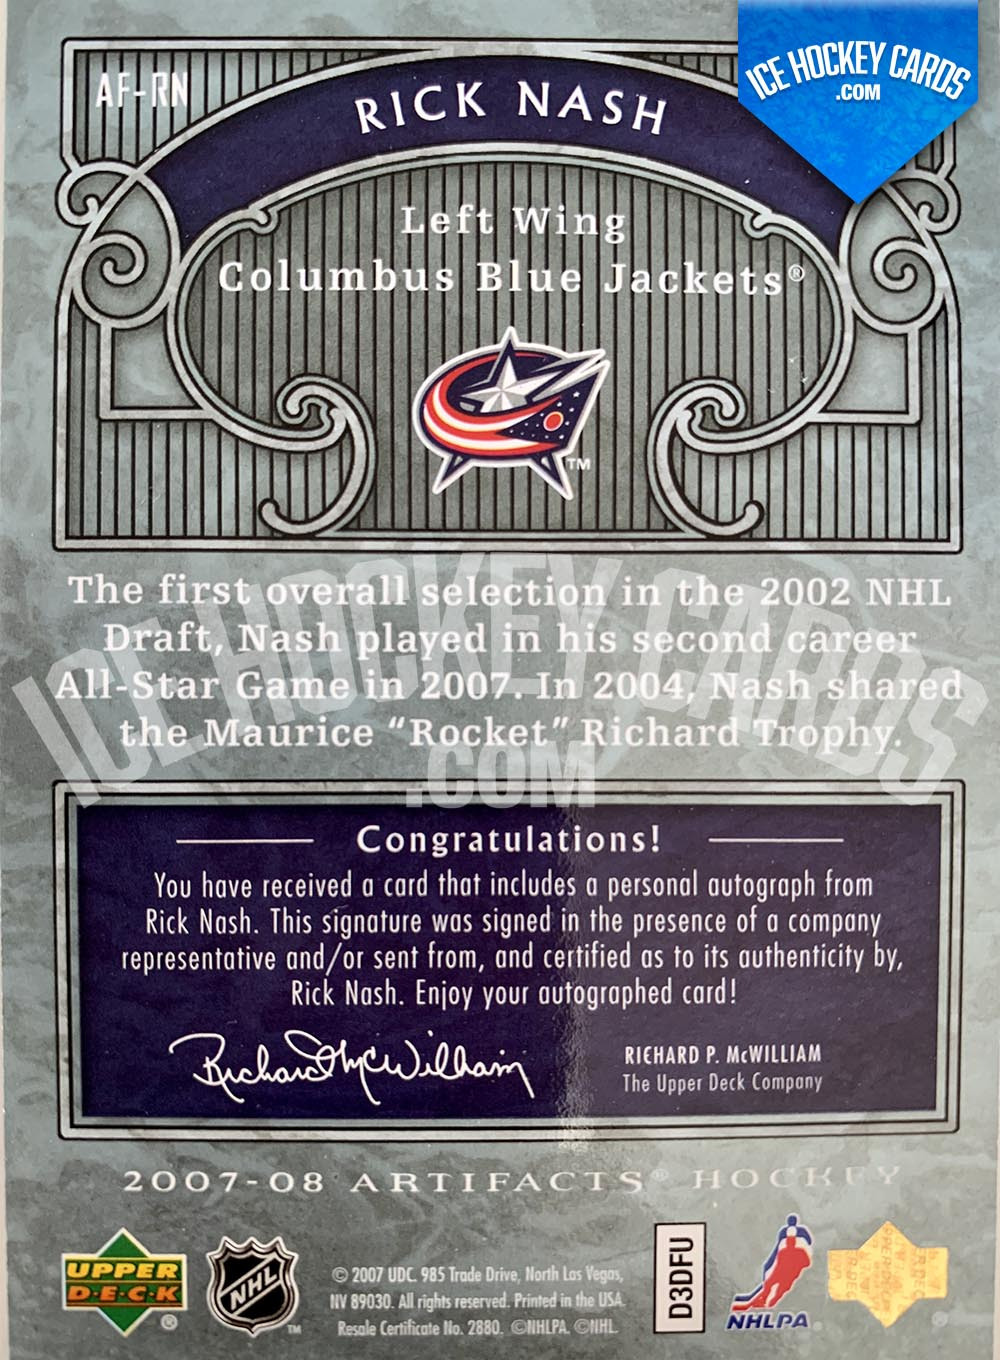 Upper Deck - Artifacts 2007-08 - Rick Nash Autofacts Autograph Card back